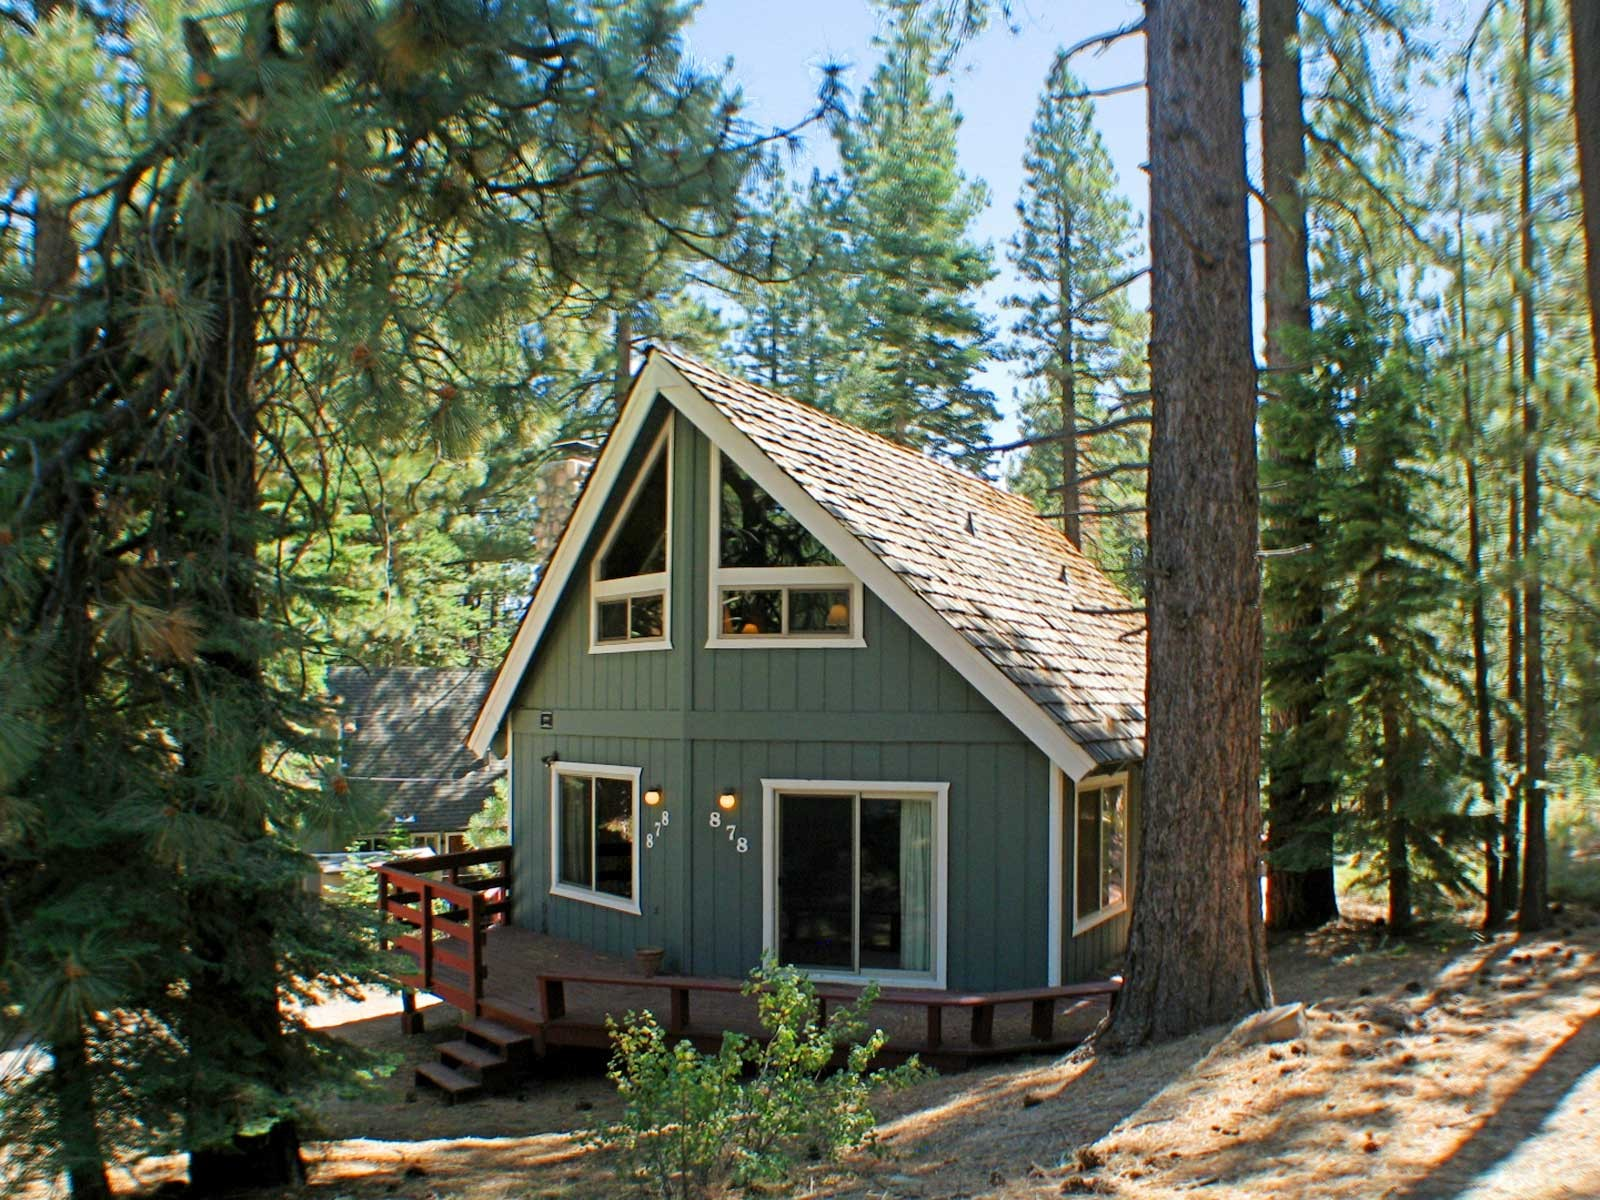 tahoe lake log sale south years for new rentals cabin in cabins